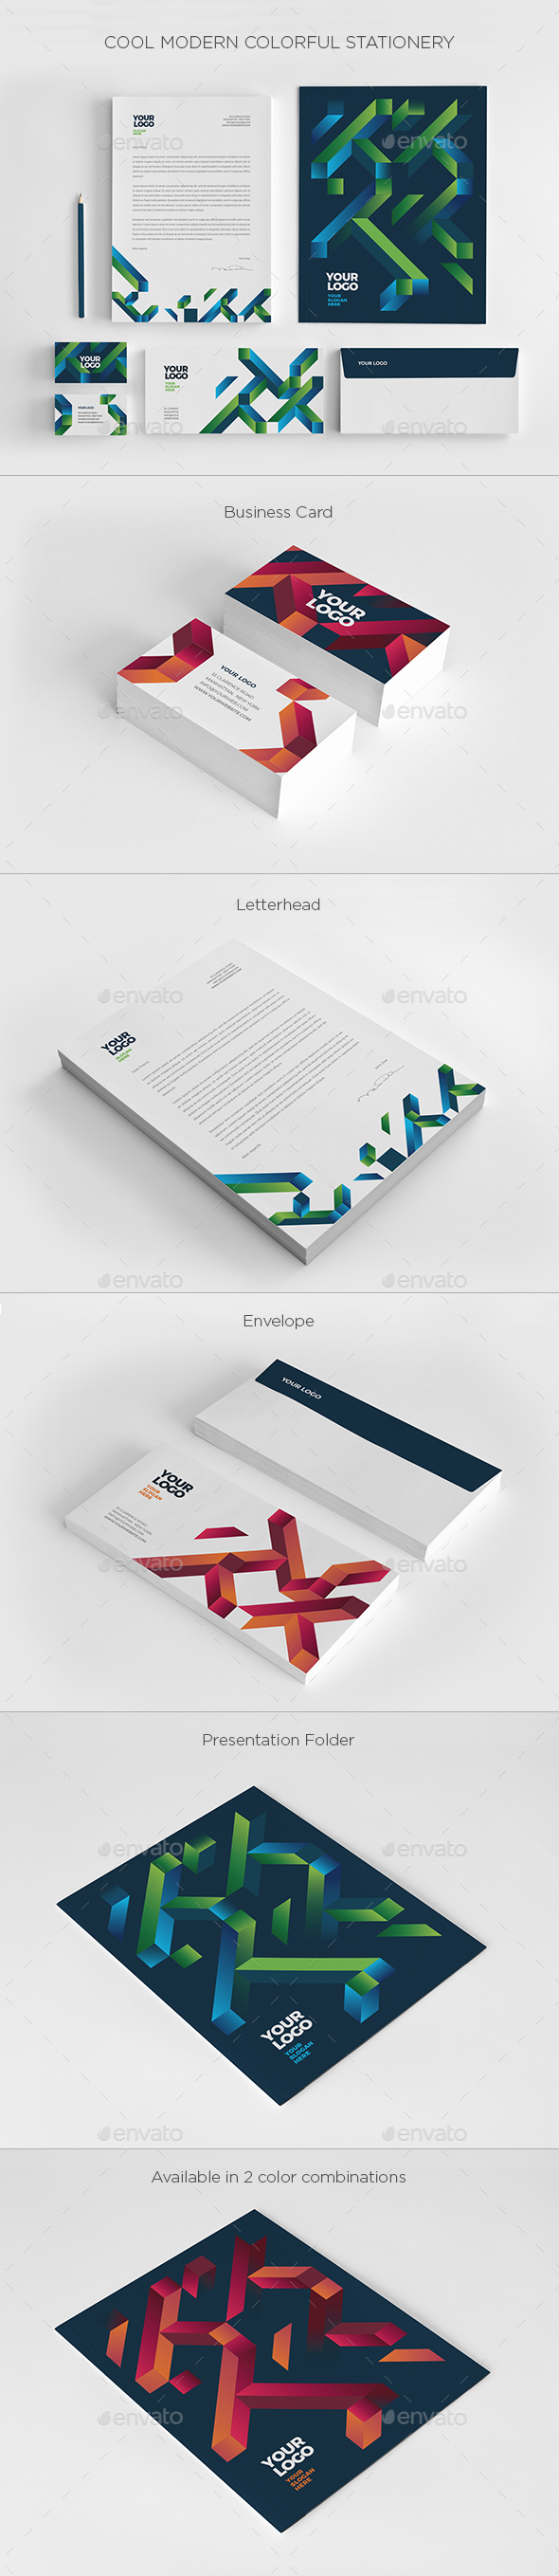 Cool Modern Colorful Stationery - Stationery Print Templates